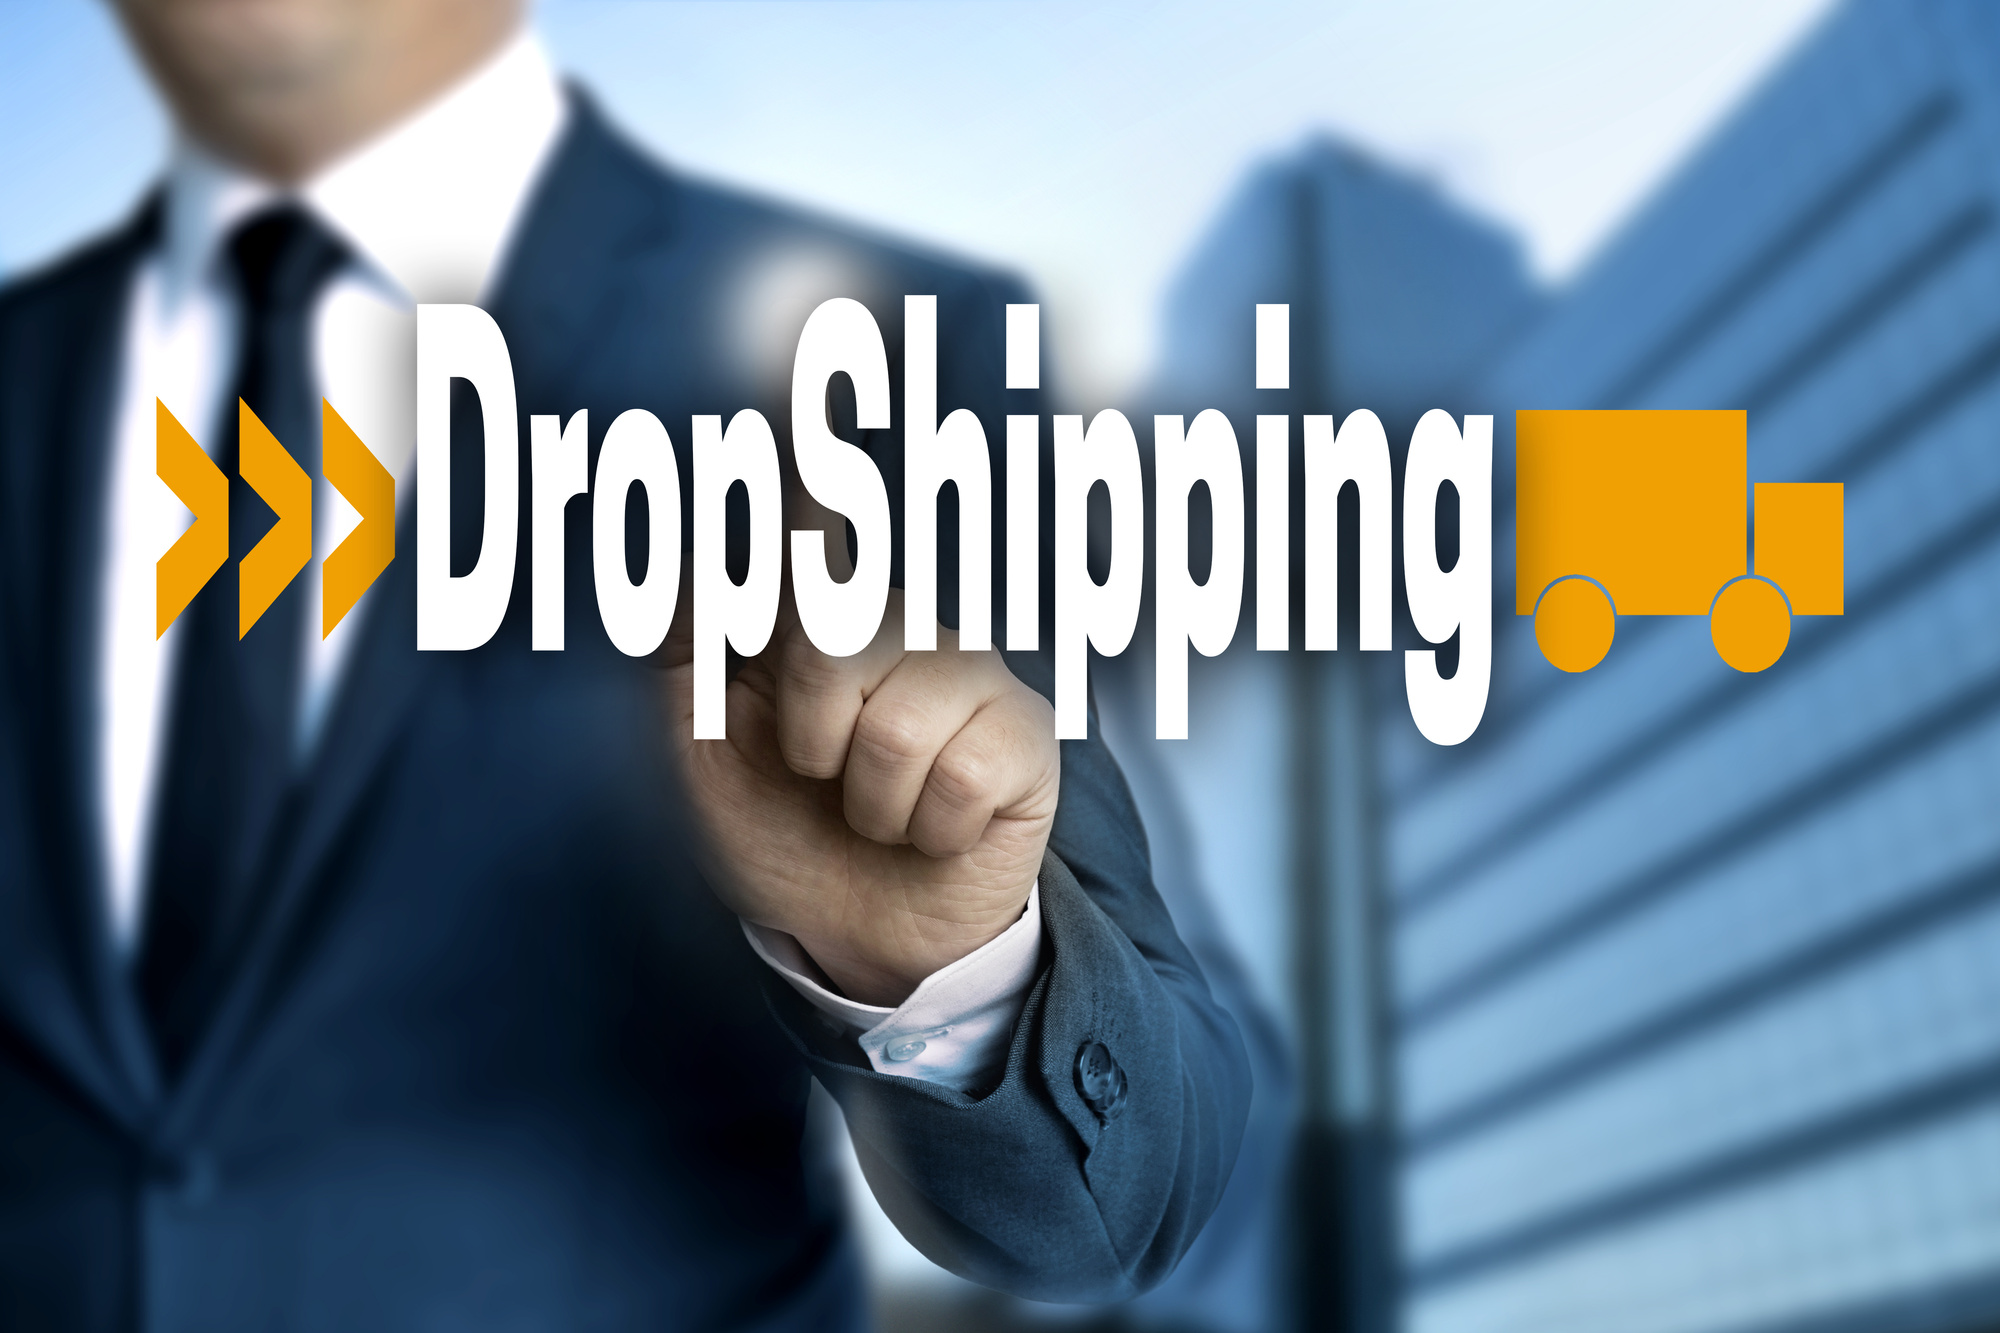 dropshipping è legale